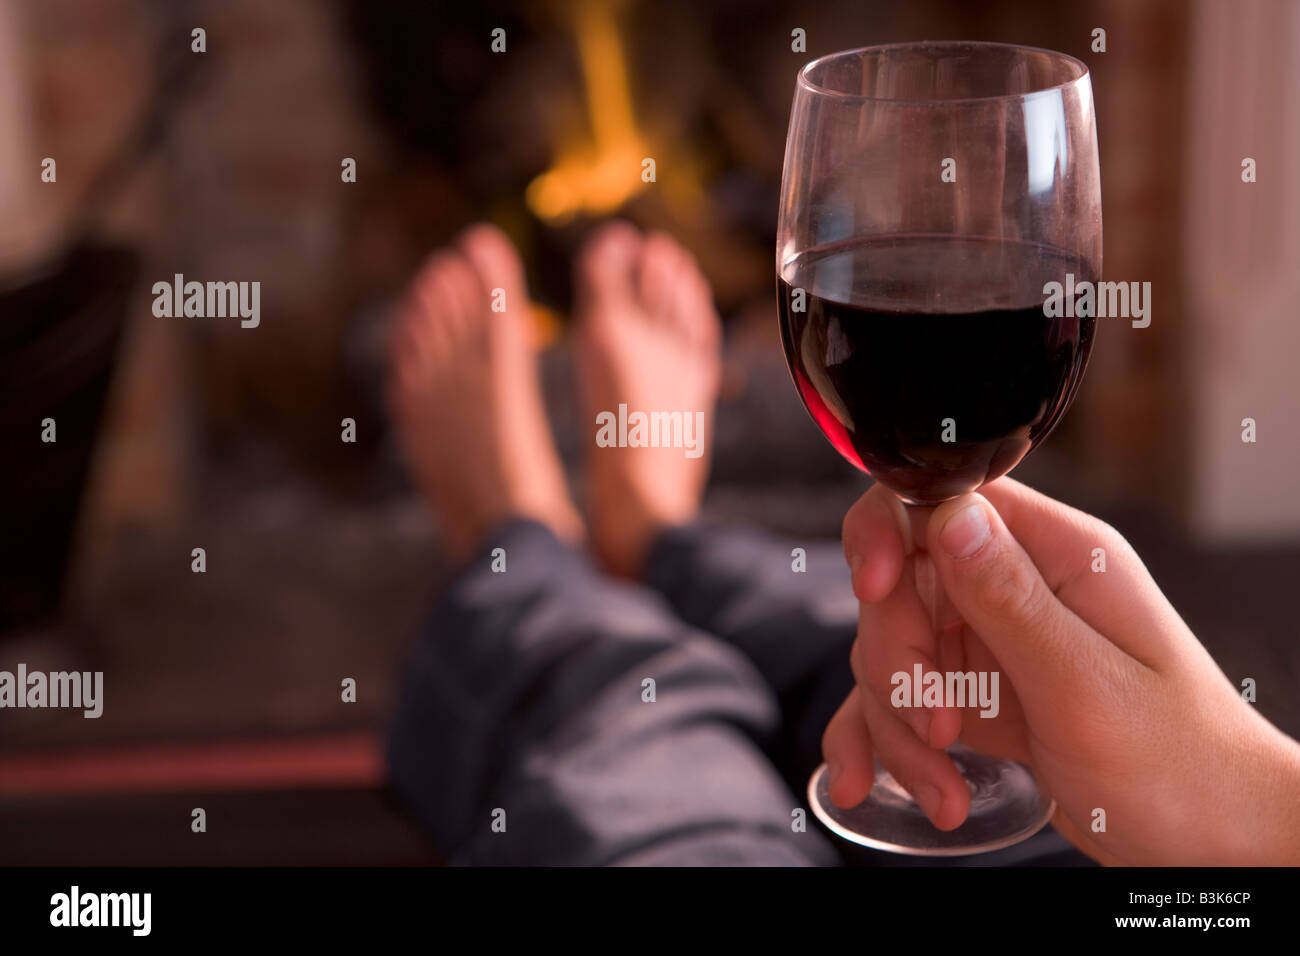 Riesling Am Kamin Weinkarte Wine Open Fire Stockfotos And Wine Open Fire Bilder Alamy